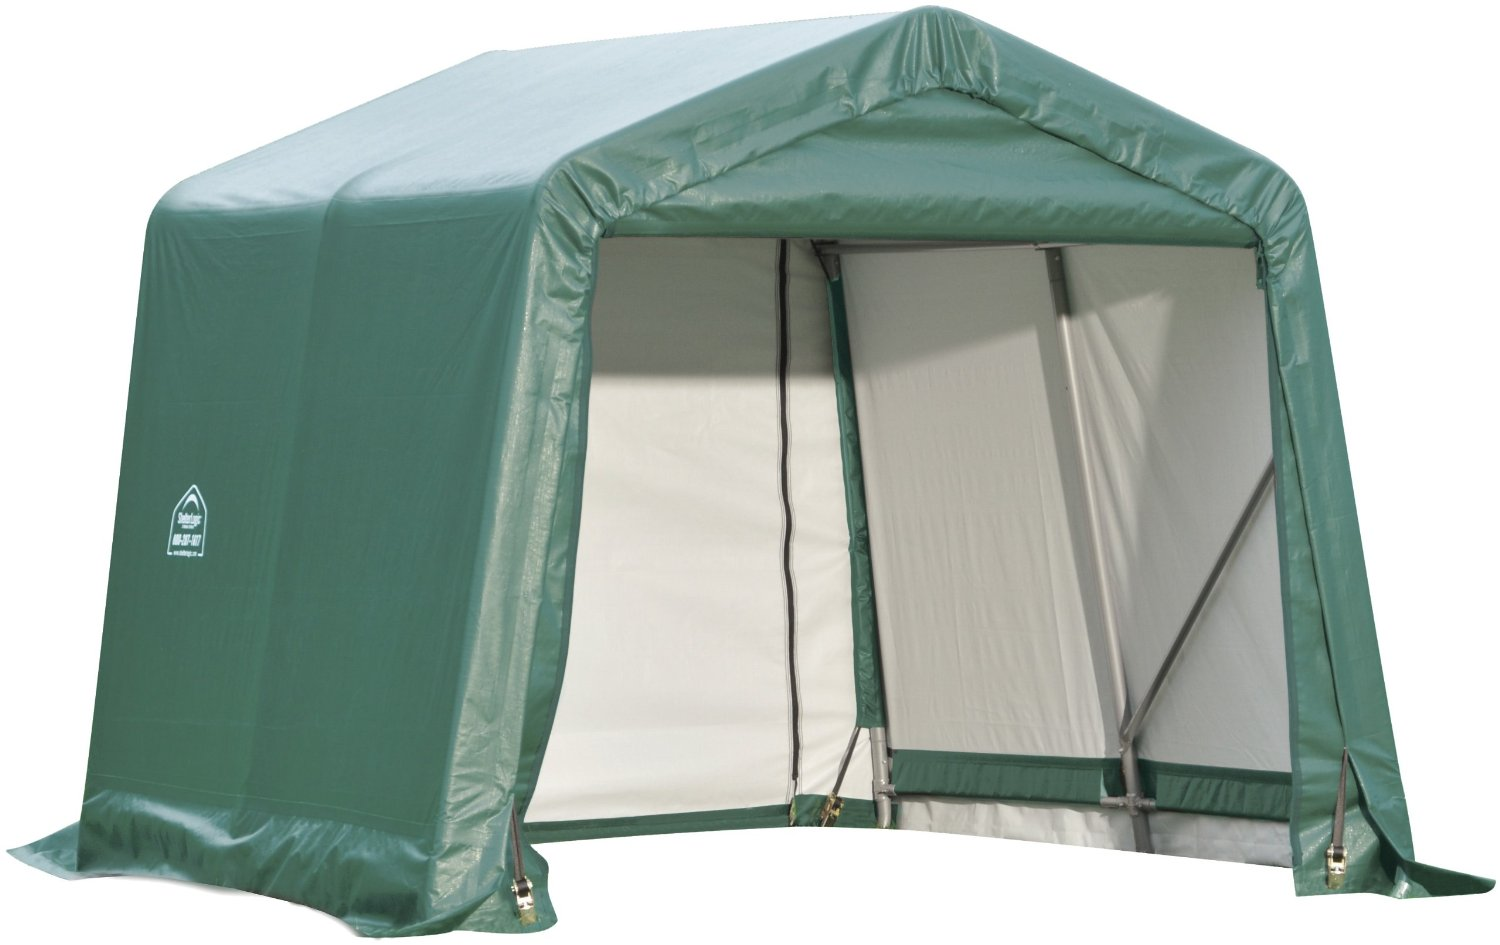 Peak Style Shelter, 11'x12'x10', Green Cover